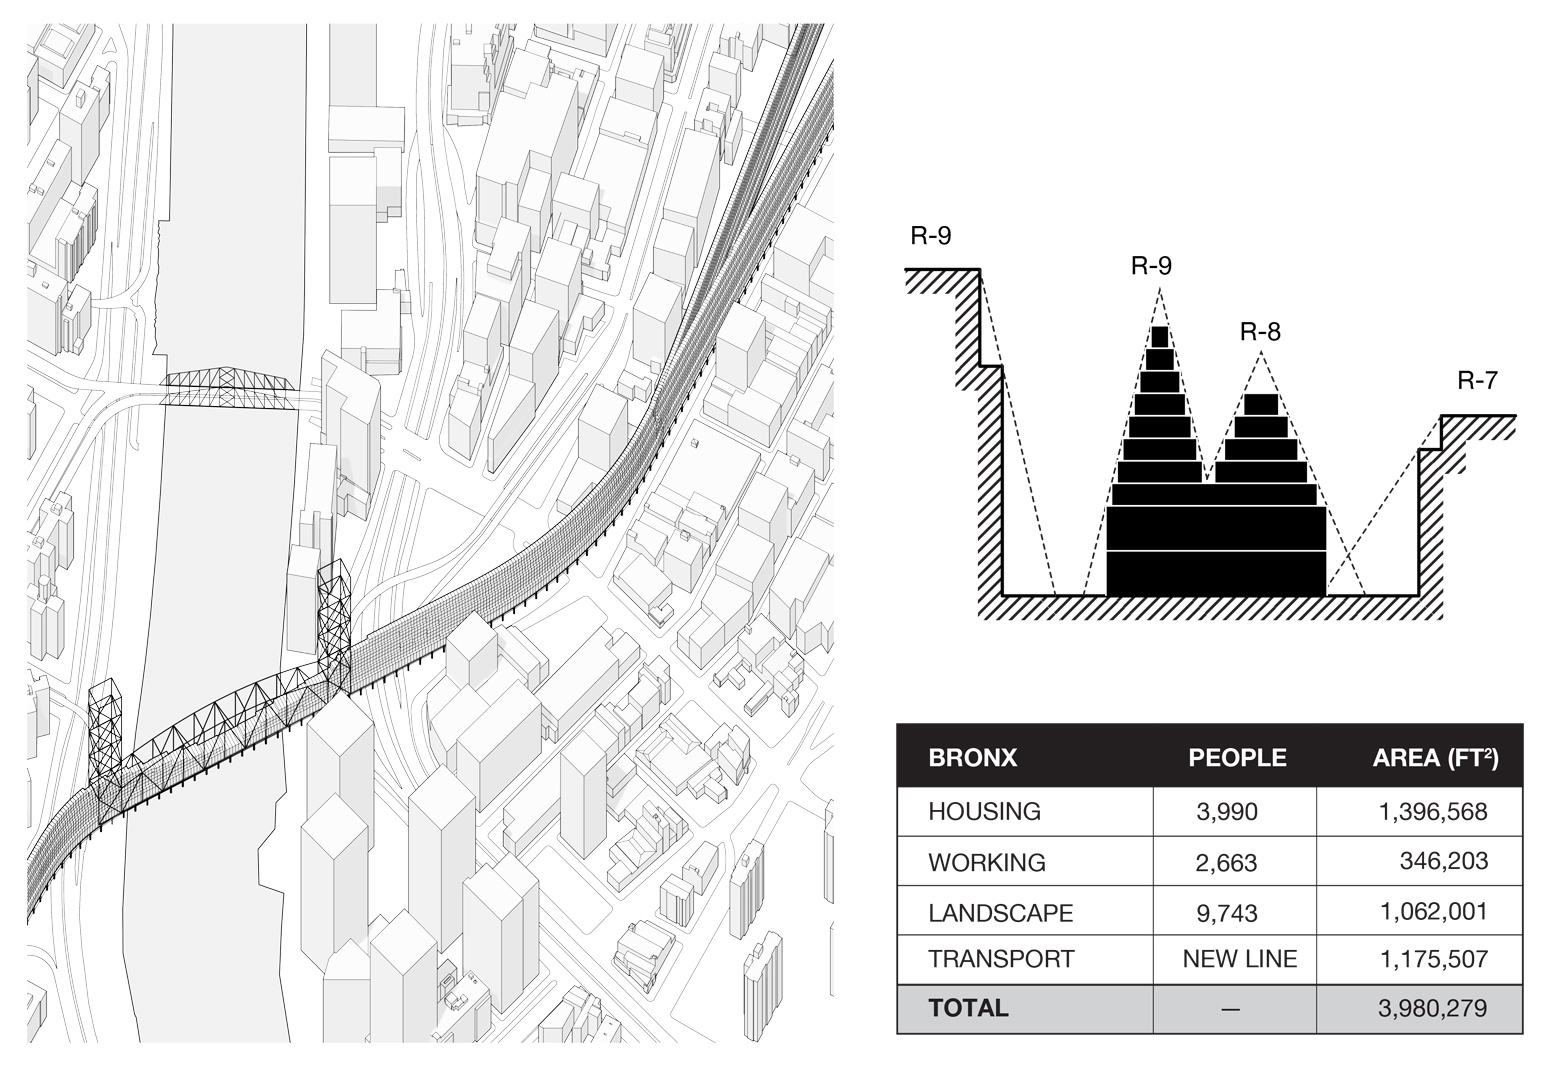 Axon, zoning and impact data on the proposed ININ infill extension into the Bronx with the possibility of extending